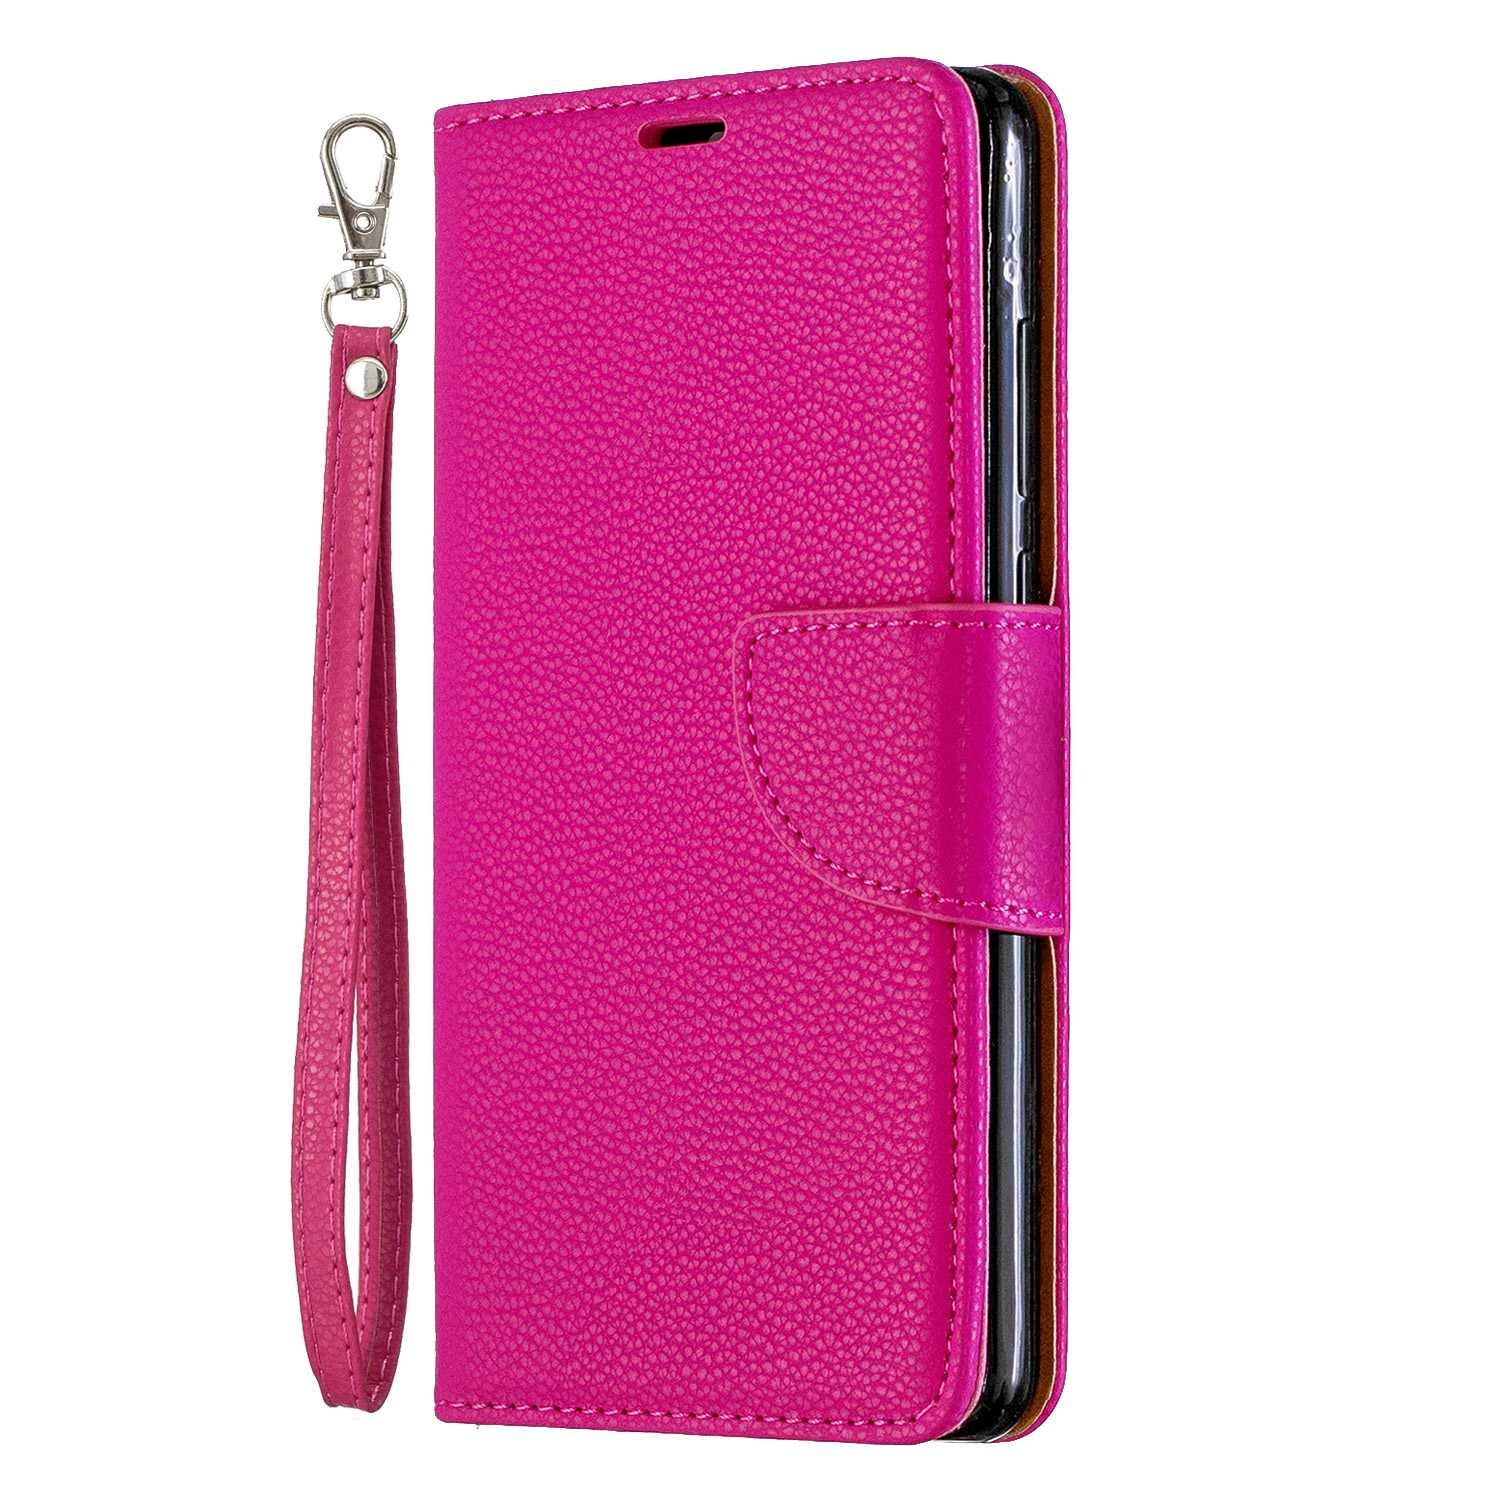 The Grafu Premium Case for Huawei P30, Scratch Resistant Flip Folio Case Cover with Card Slot and Magnetic Closure for Huawei P30, Rose Red